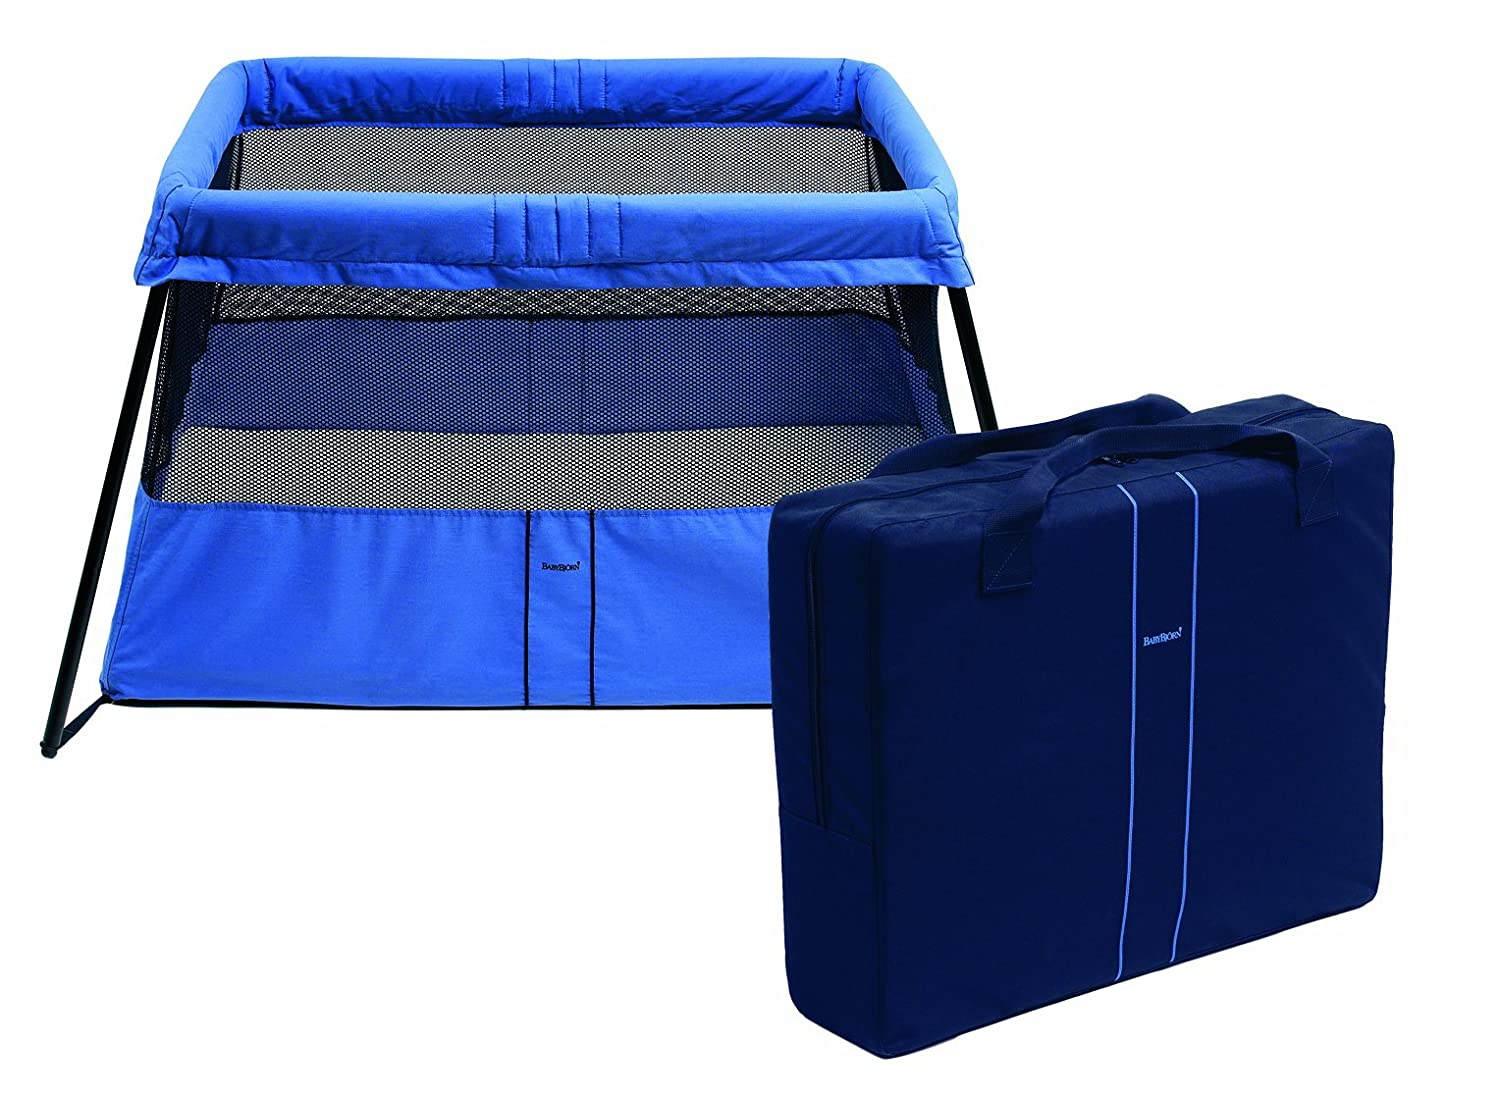 phil teds playpens feeding and travel top crib cot city cribs petite at change home commuter joie changer winstanleys pramworld cots safety